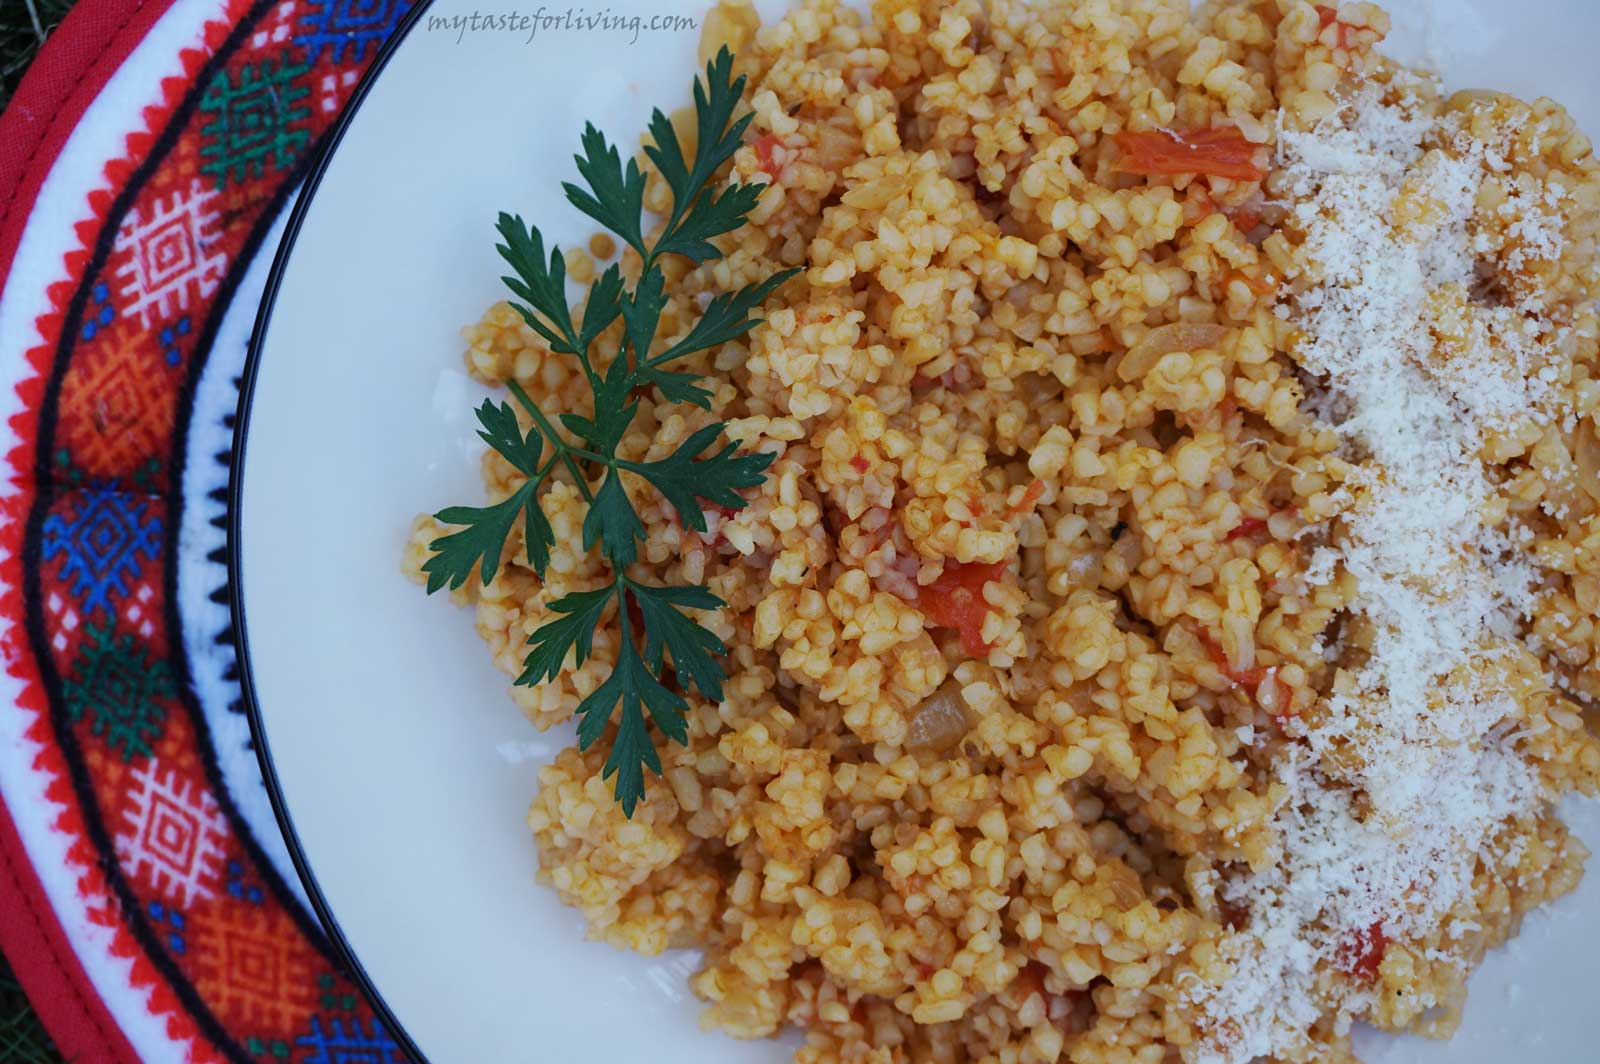 Bulgur with tomatoes and onions - a favorite dish that I often prepare in the summer with fresh tomatoes from the garden.